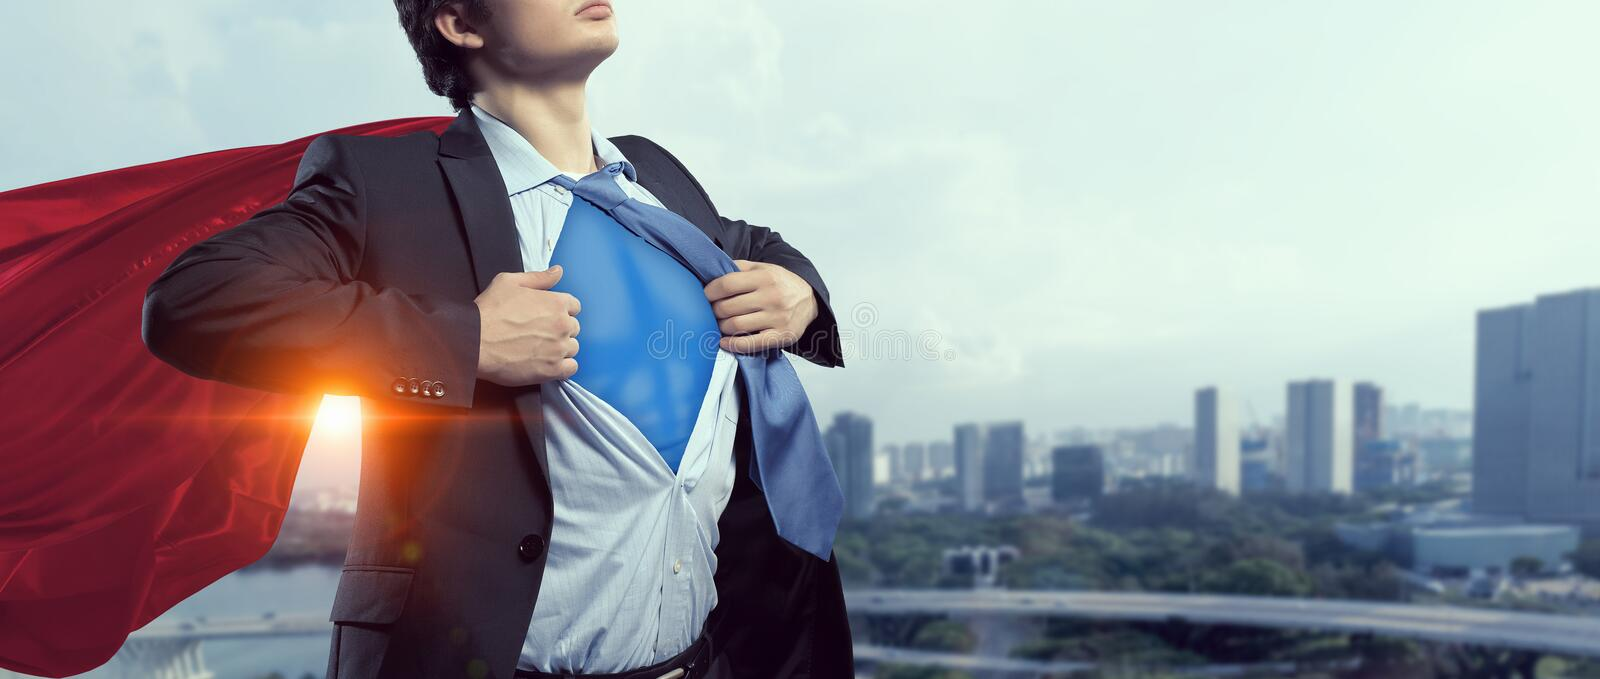 Demostrating his strength and courage royalty free stock photos